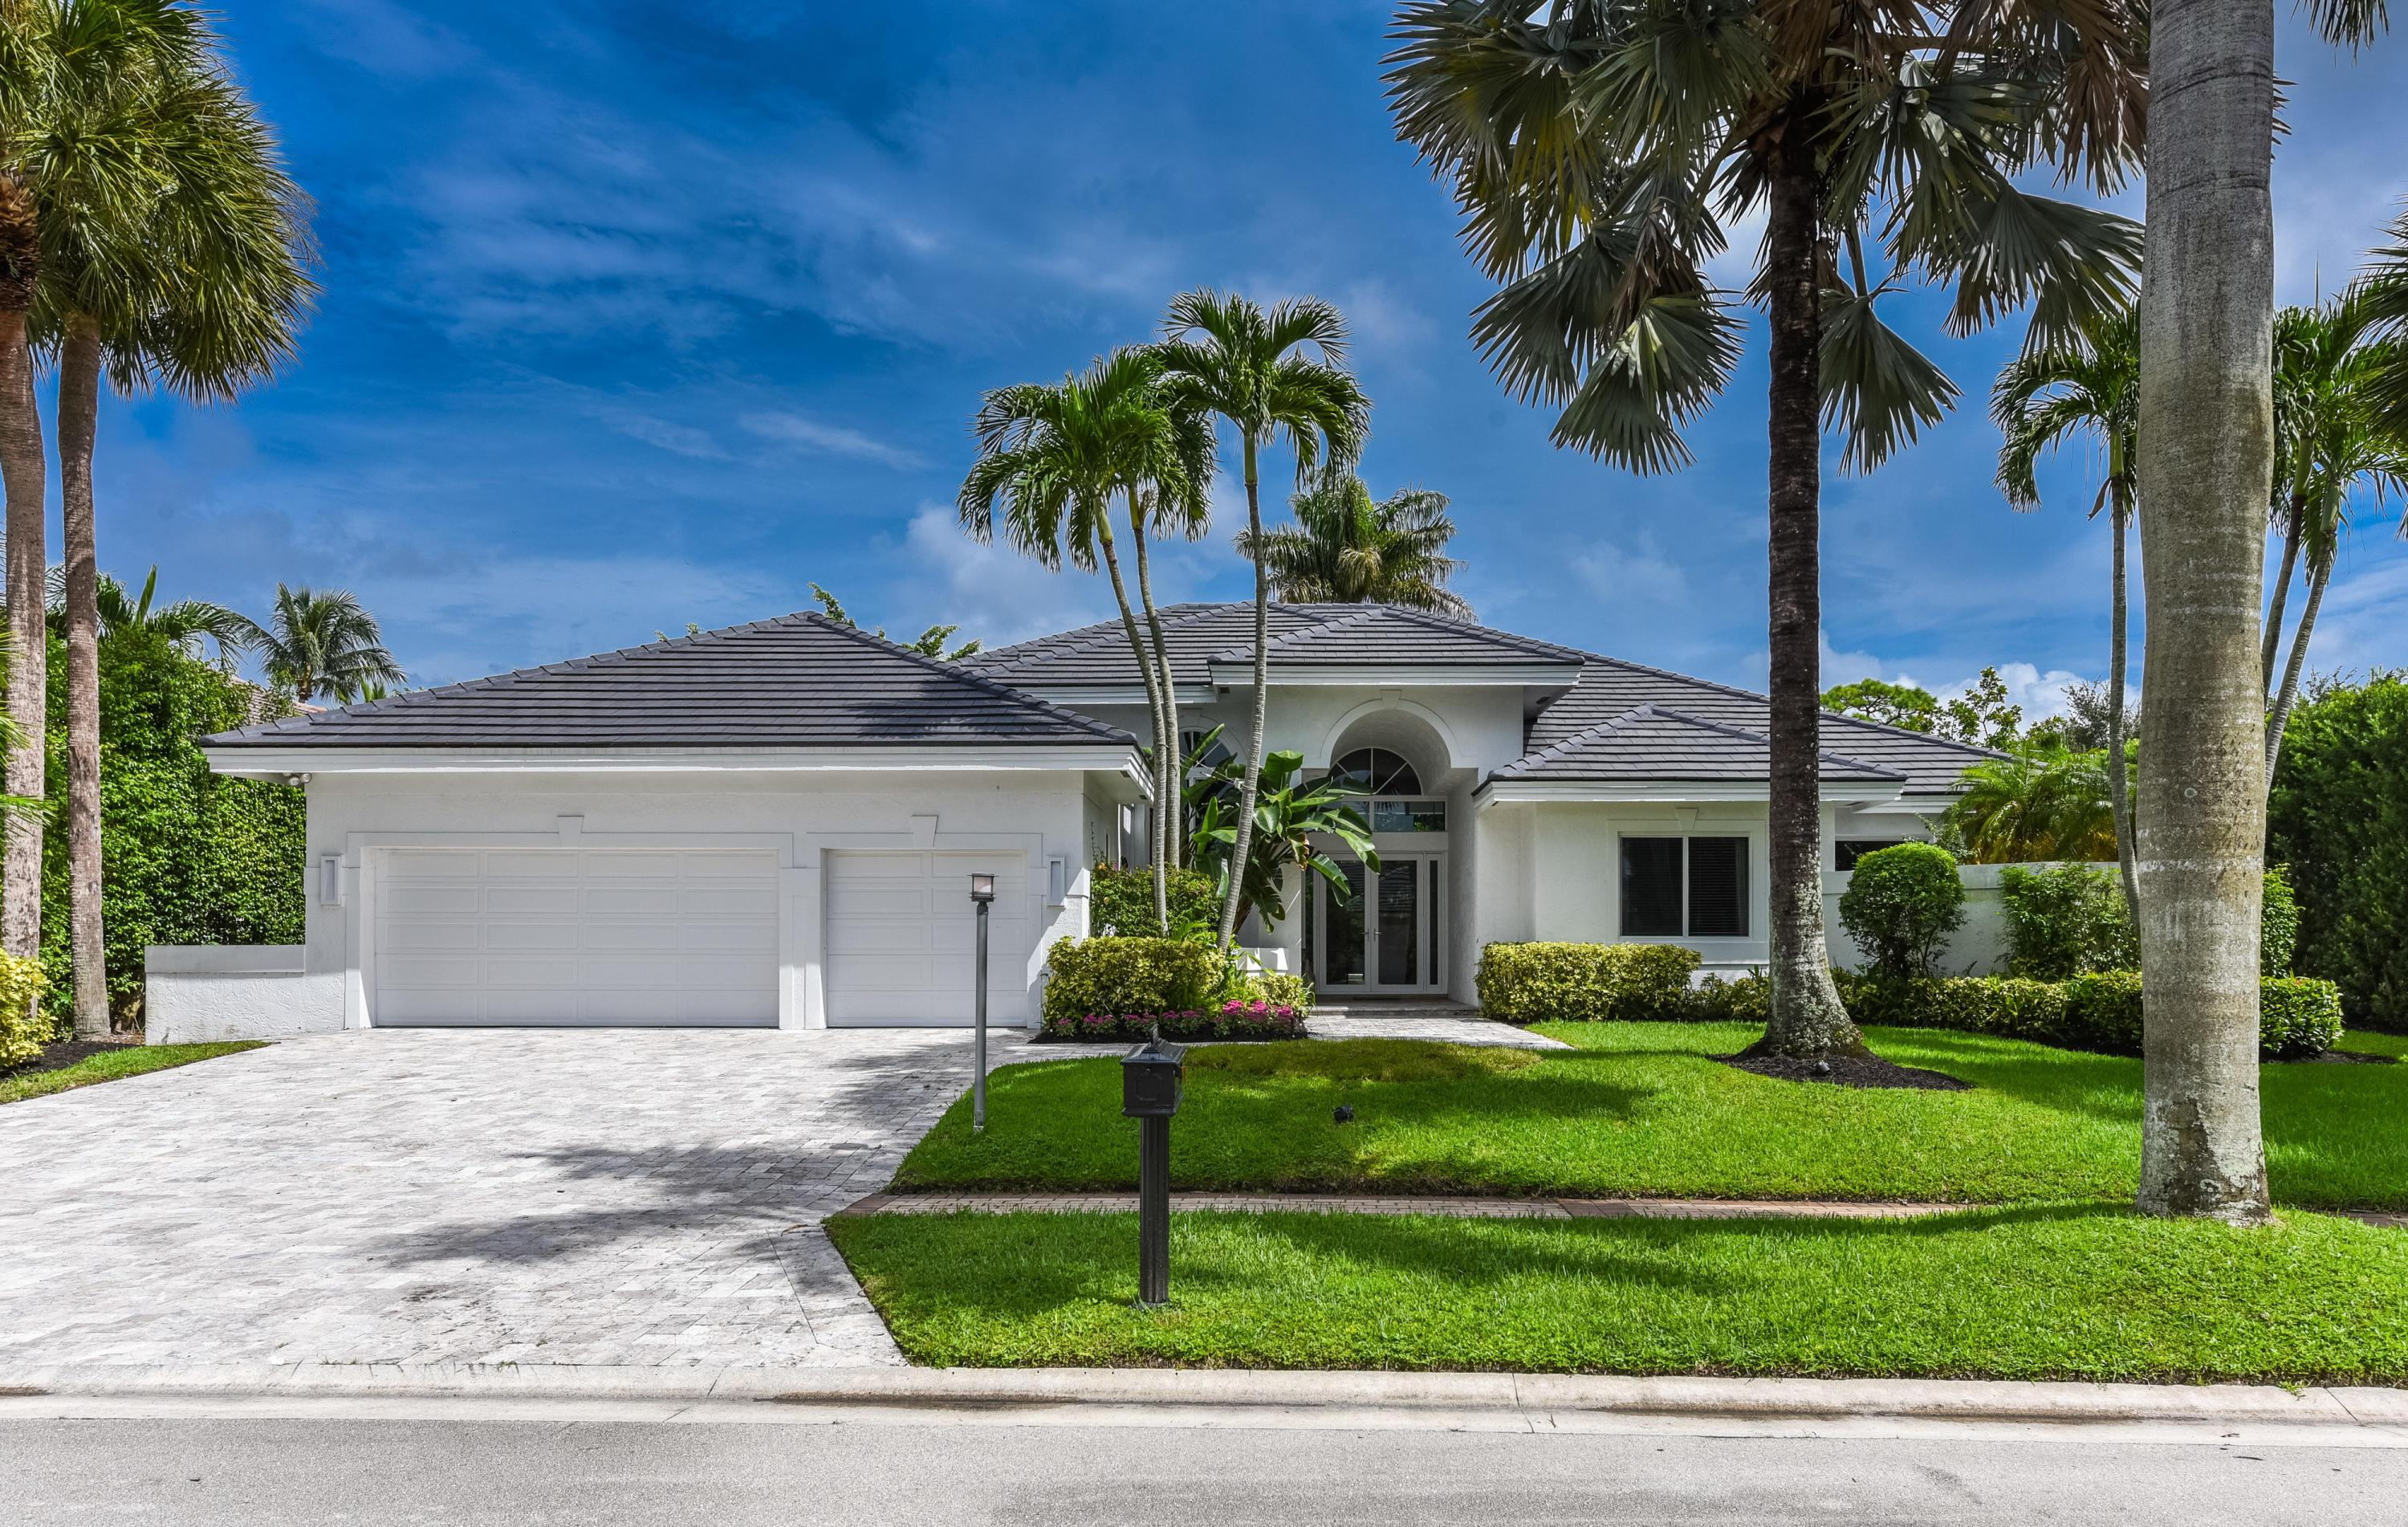 Boca Raton: St. Andrews - listed at 1,475,000 (17576 Scarsdale Wy)